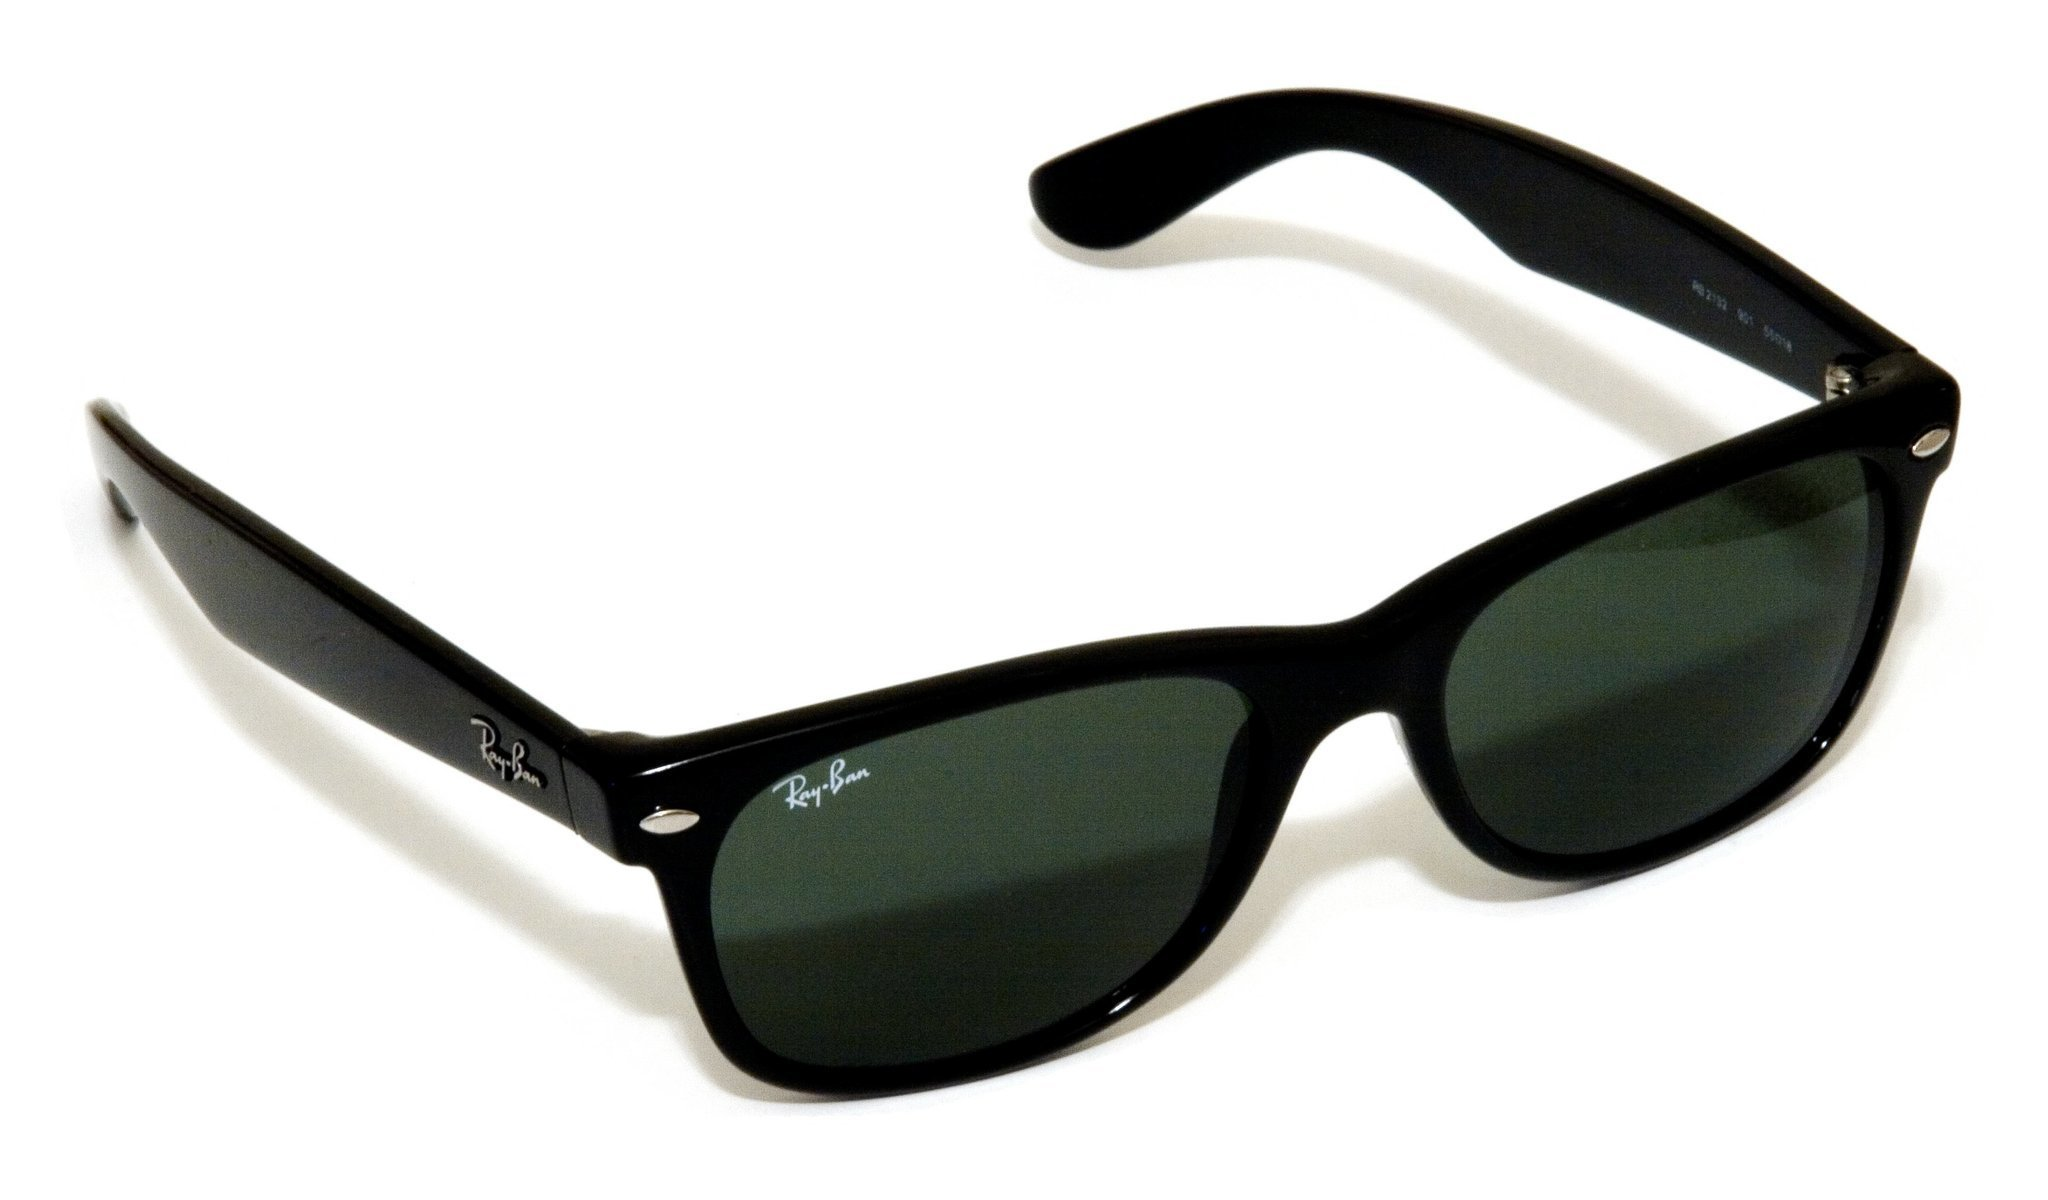 ray ban made by luxottica  Lawsuits ask for ban on fake Ray-Bans - The San Diego Union-Tribune